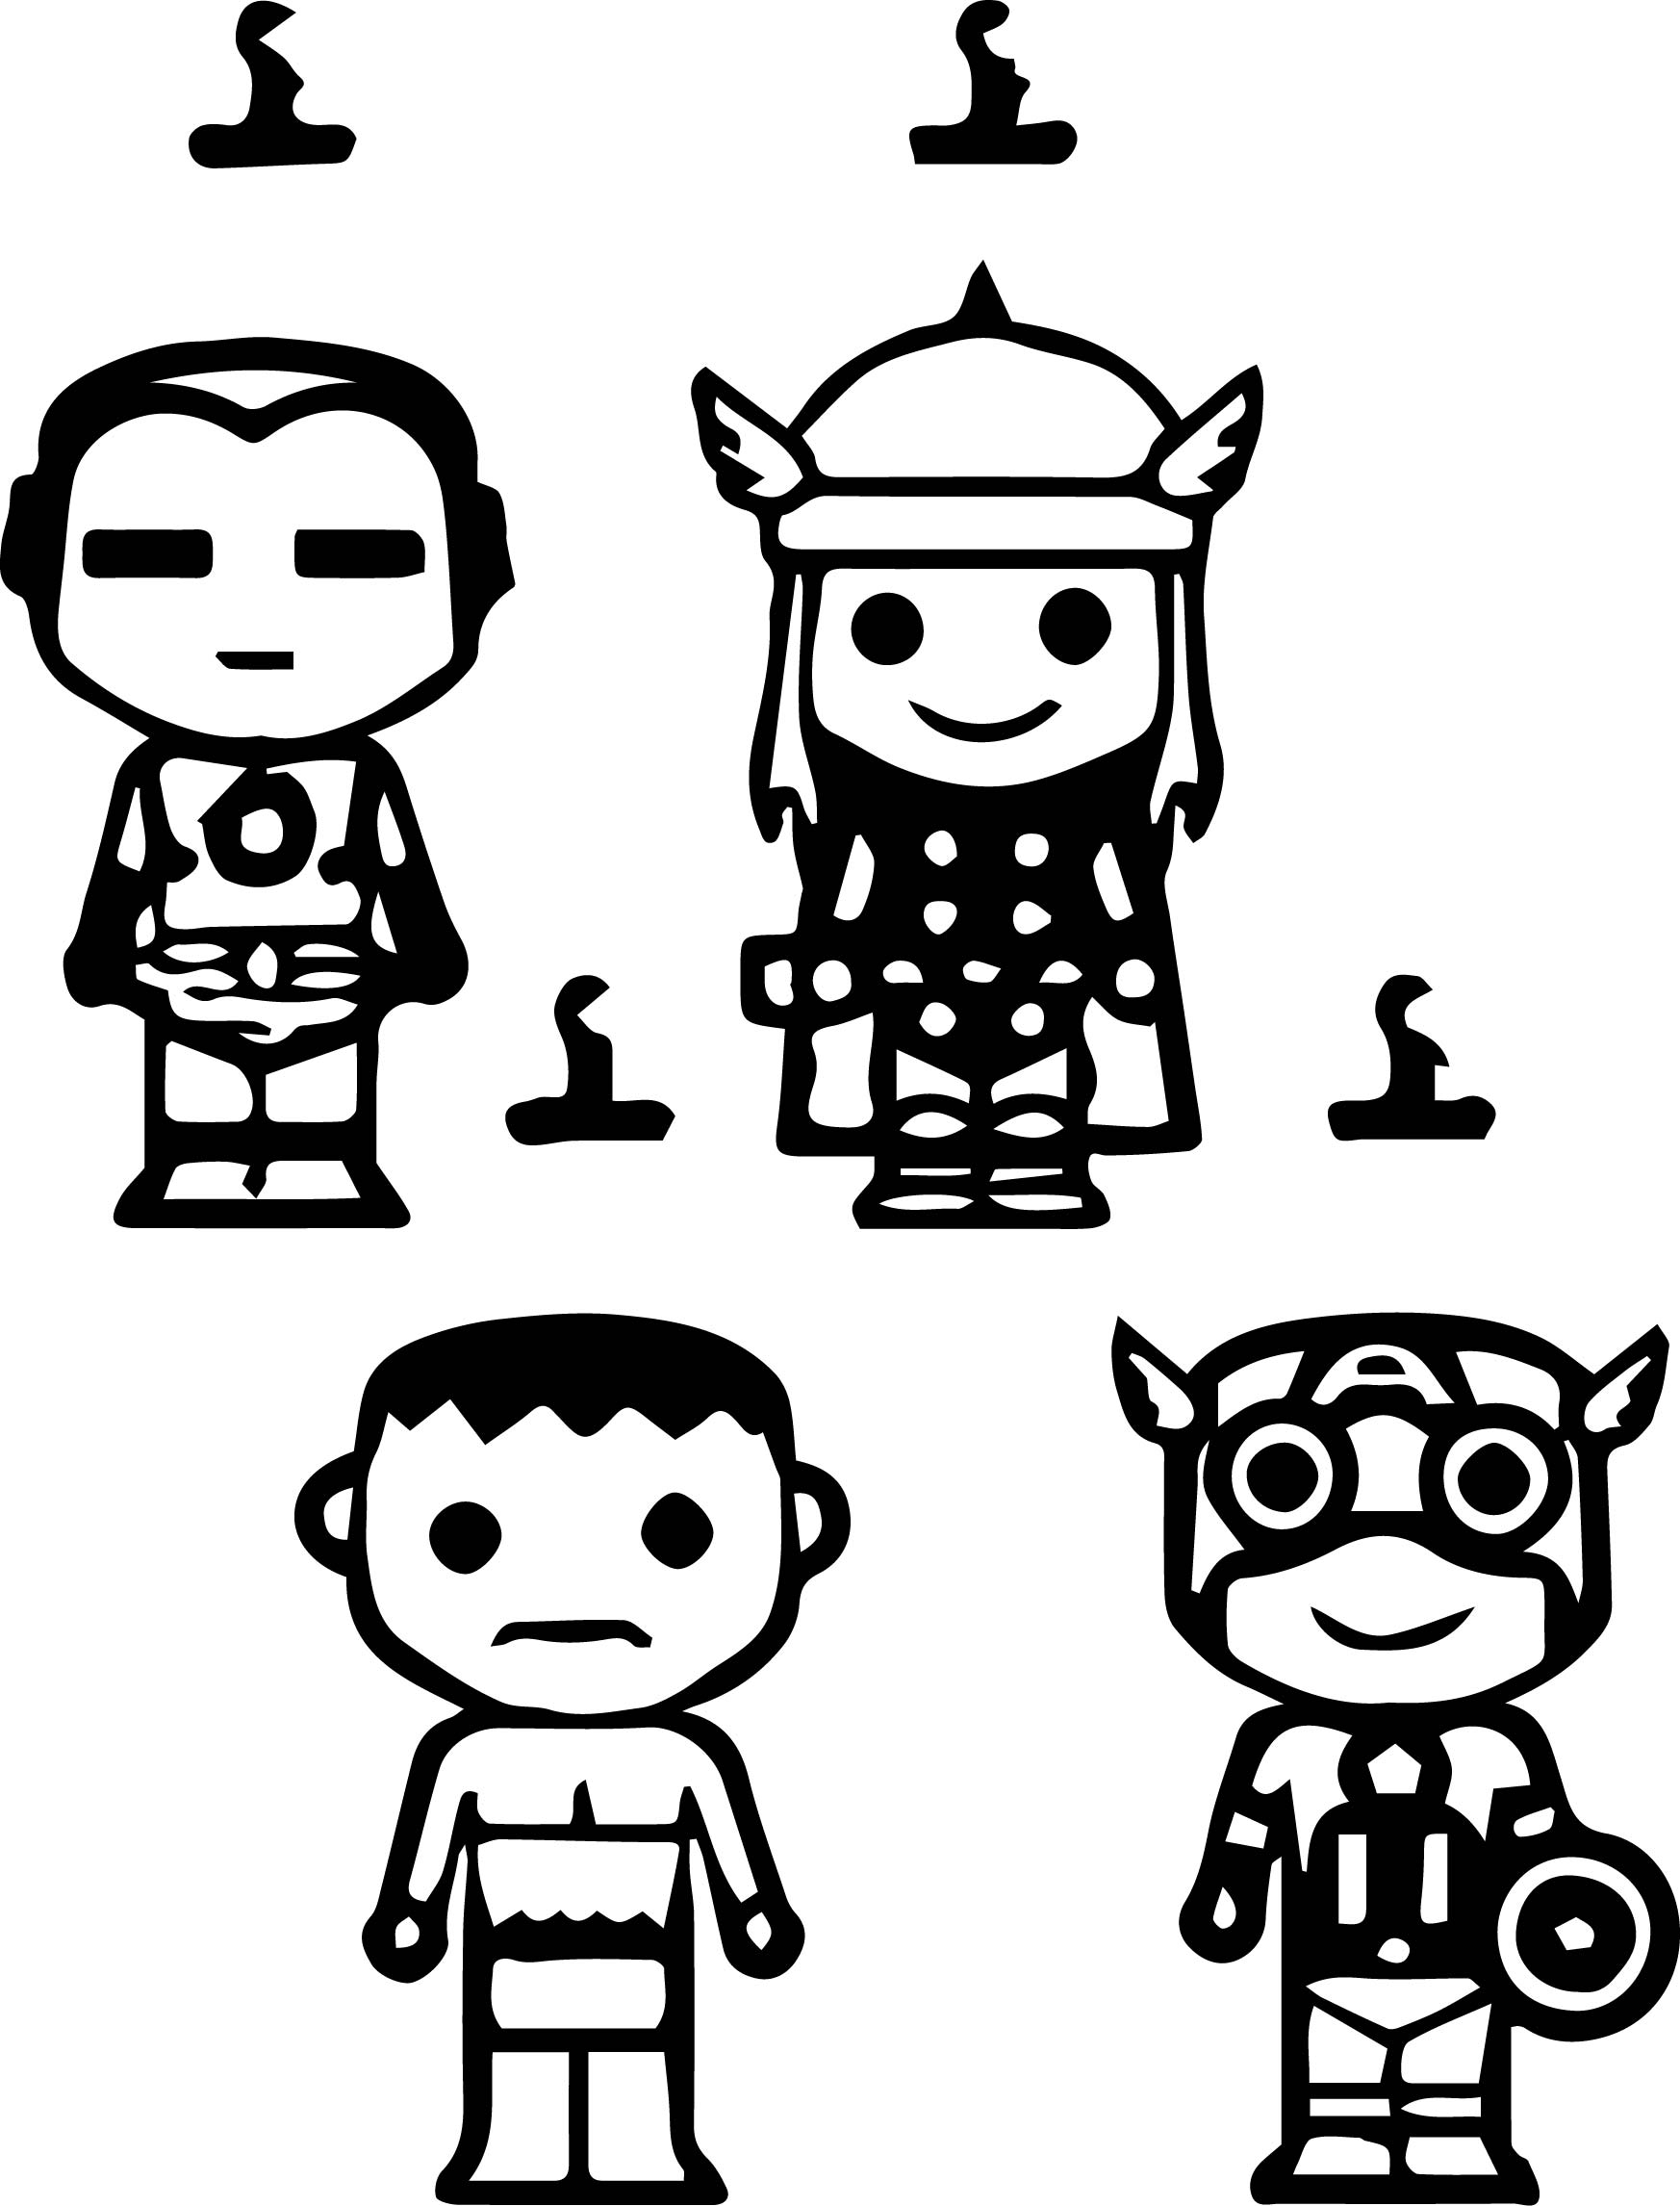 chibi avengers coloring pages avengers chibi version by skulpin16 on deviantart pages chibi avengers coloring